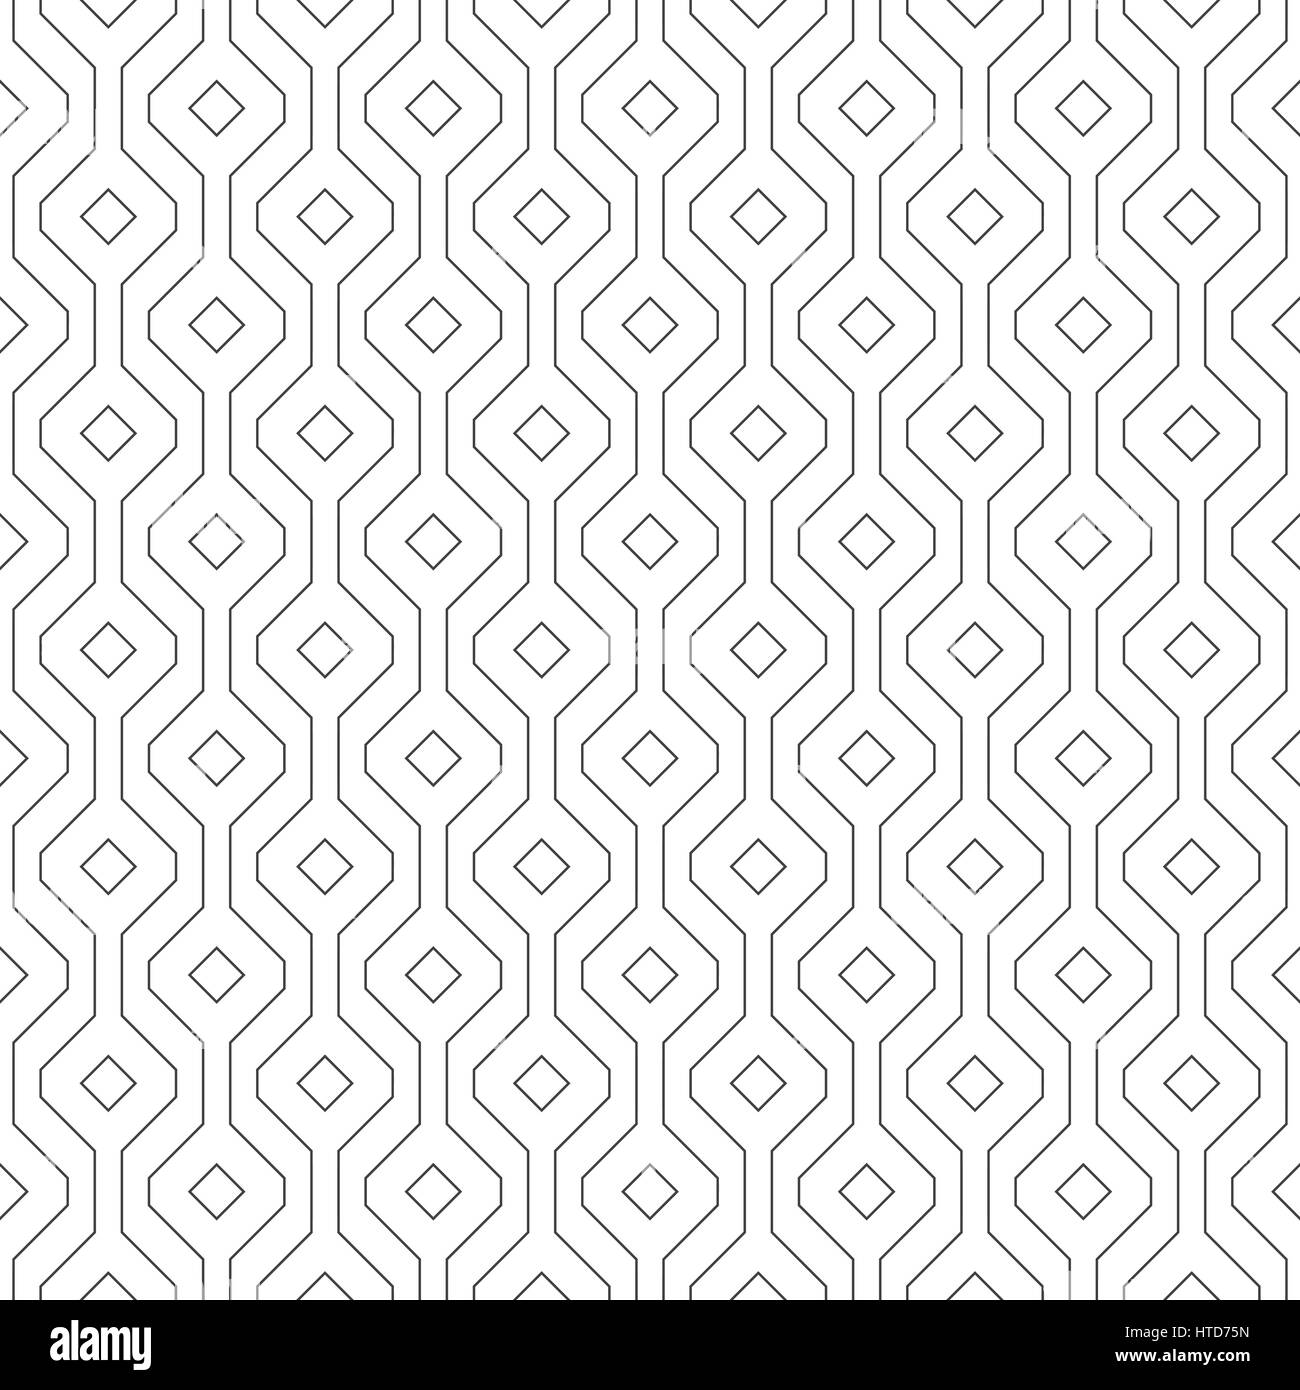 Seamless Pattern. Abstract Simple Textured Background